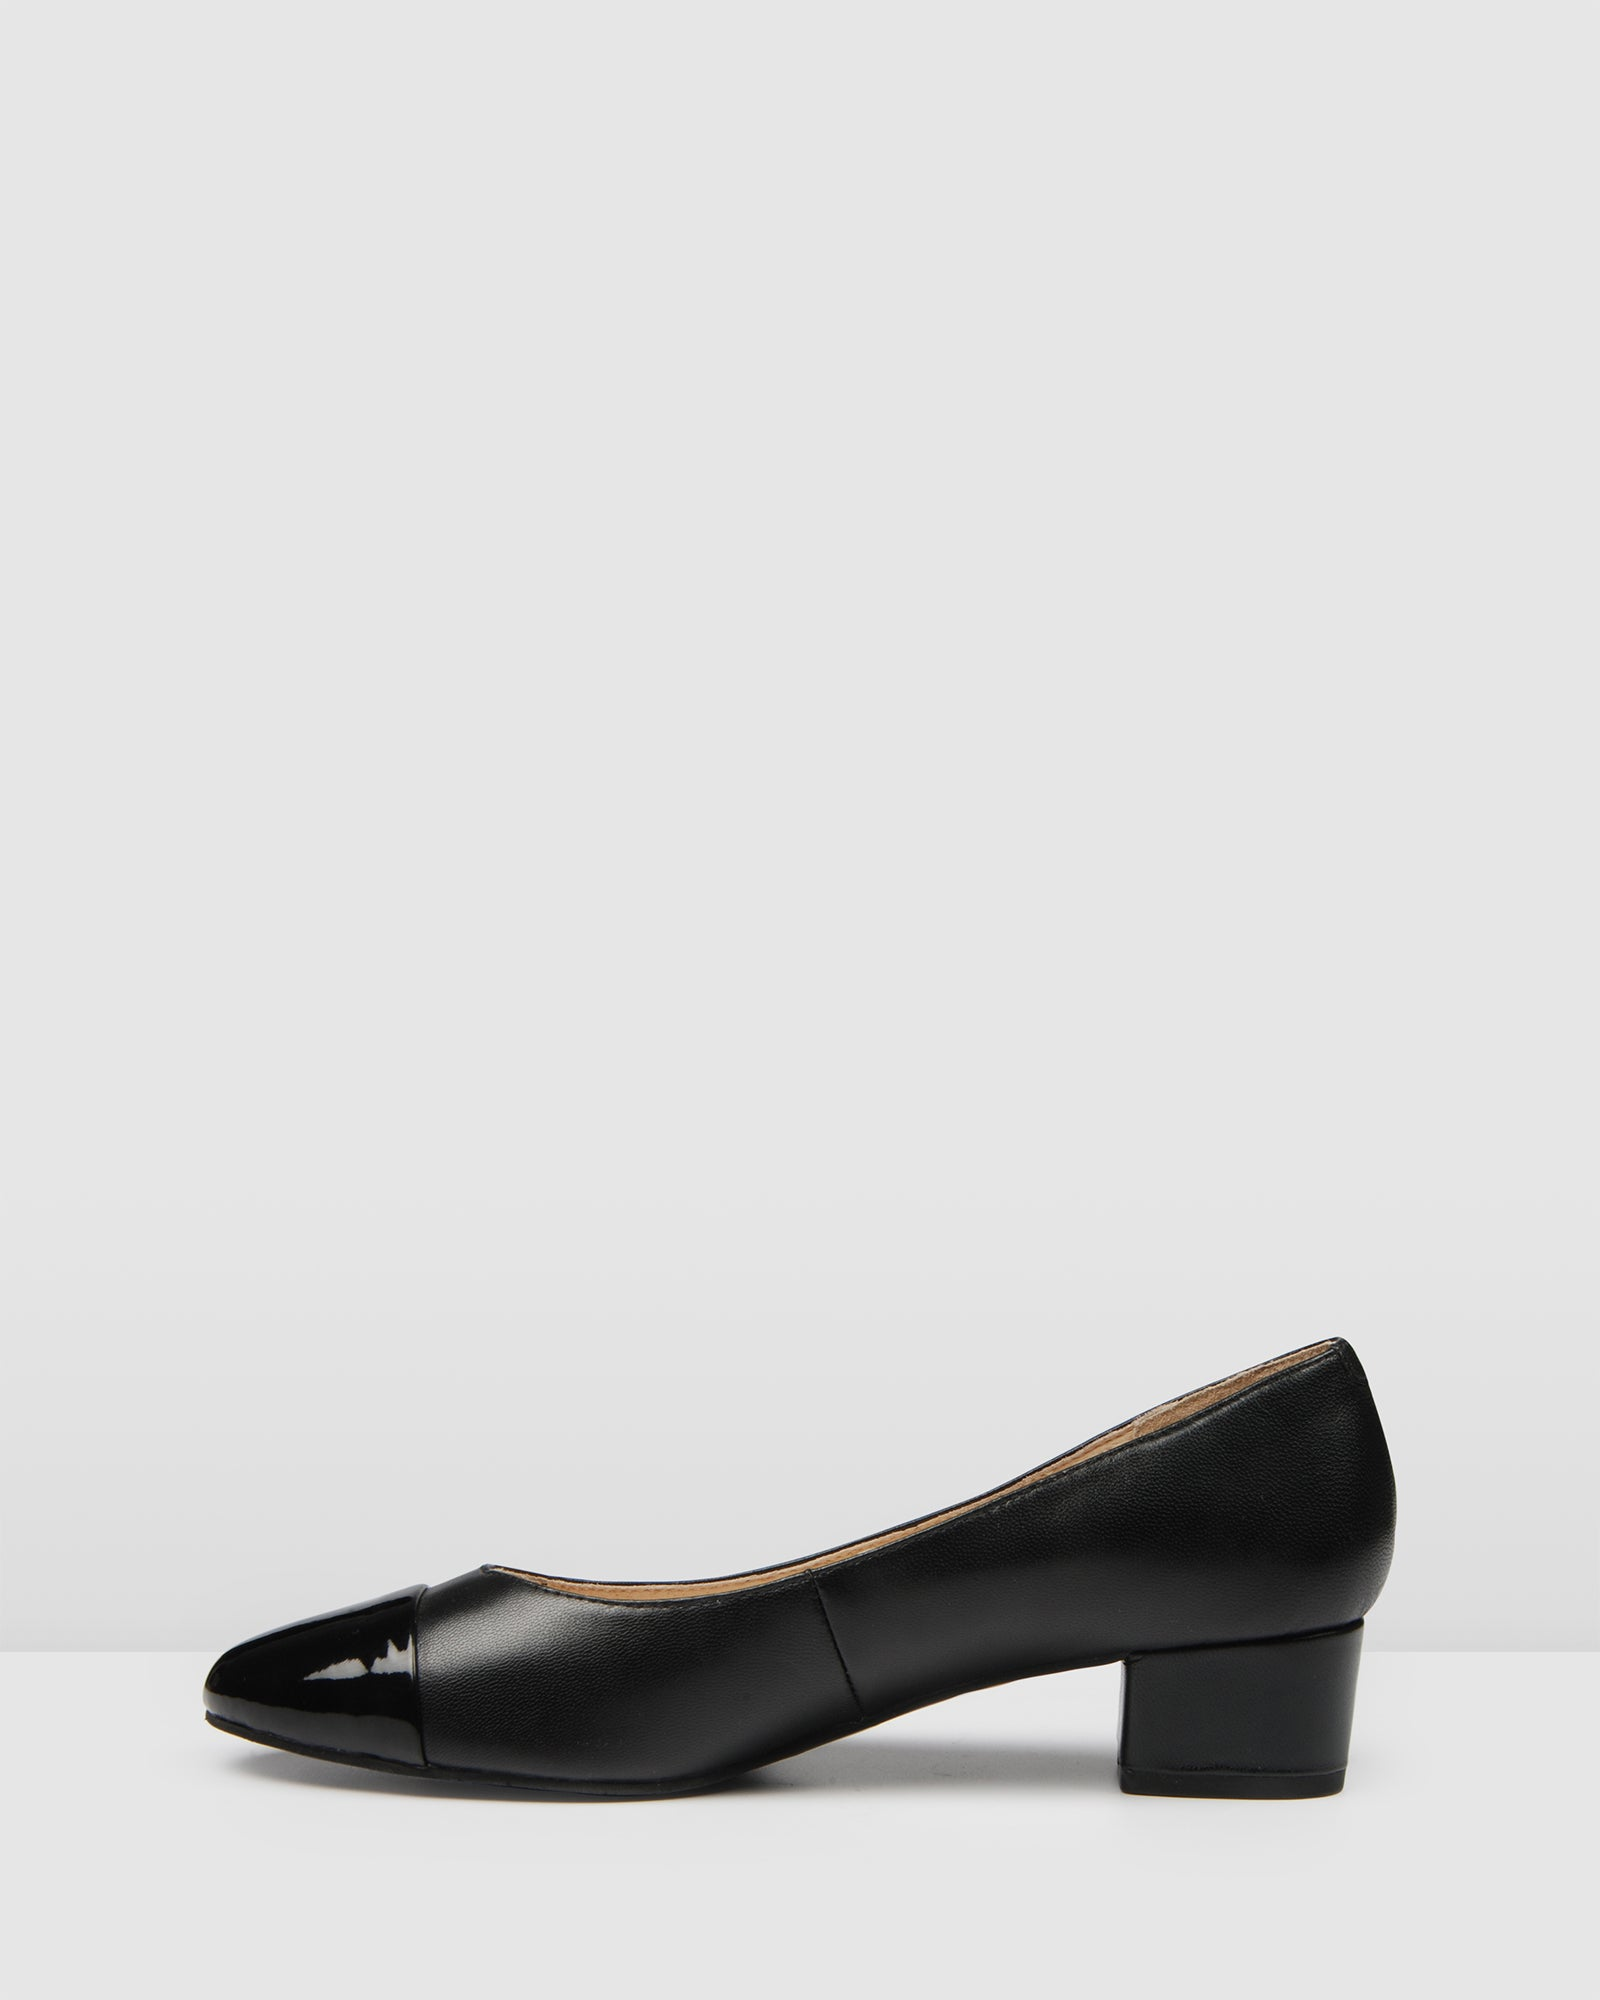 CHERRY LOW HEELS BLACK PATENT